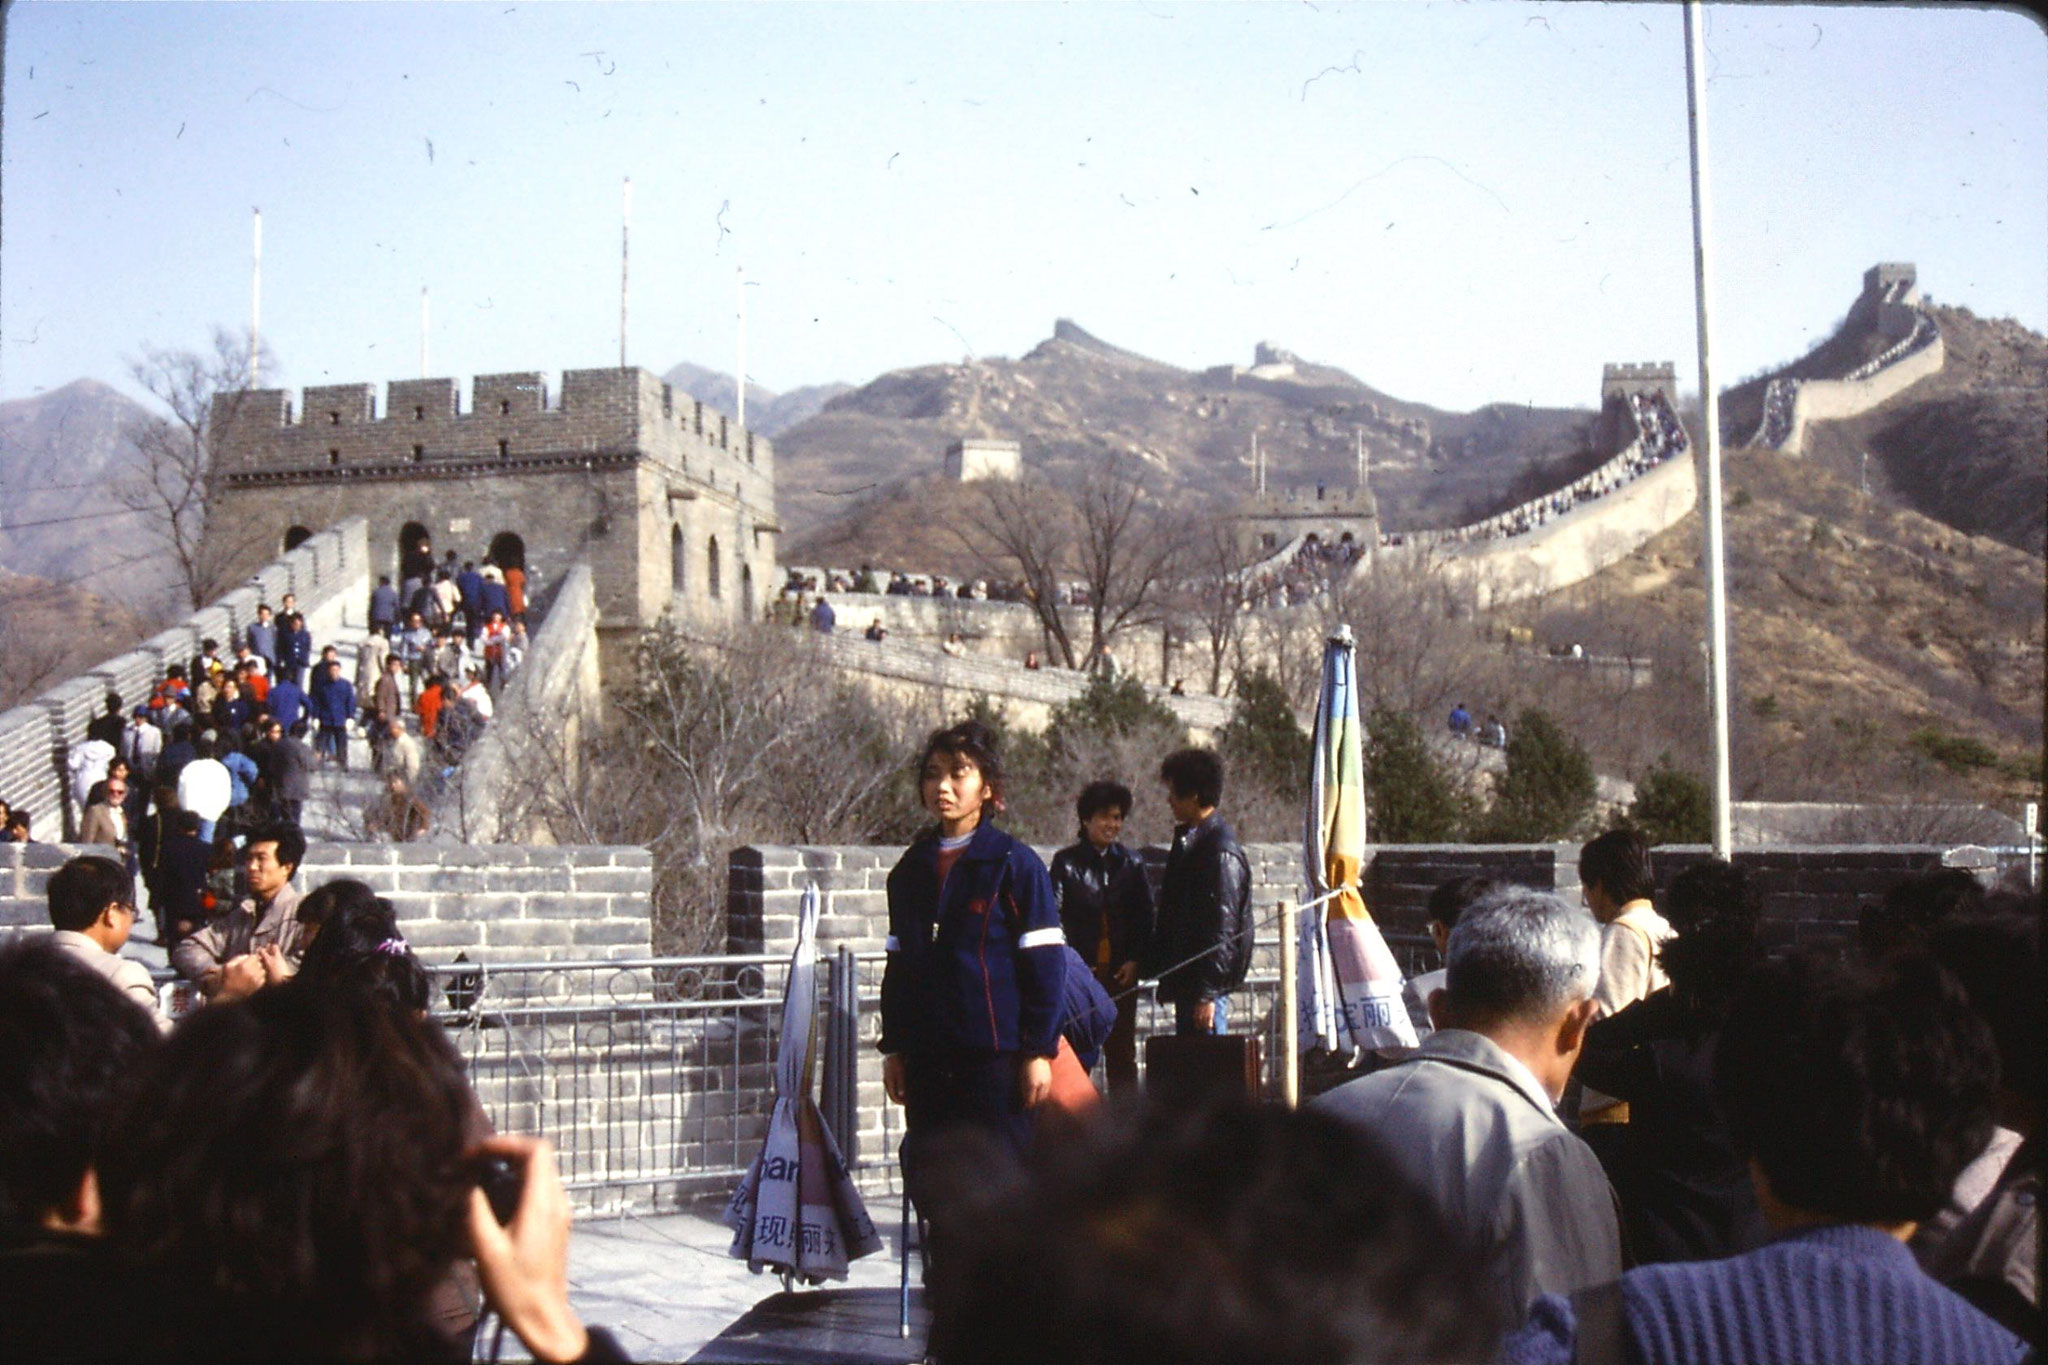 12/11/1988: 8: Great Wall at Badaling